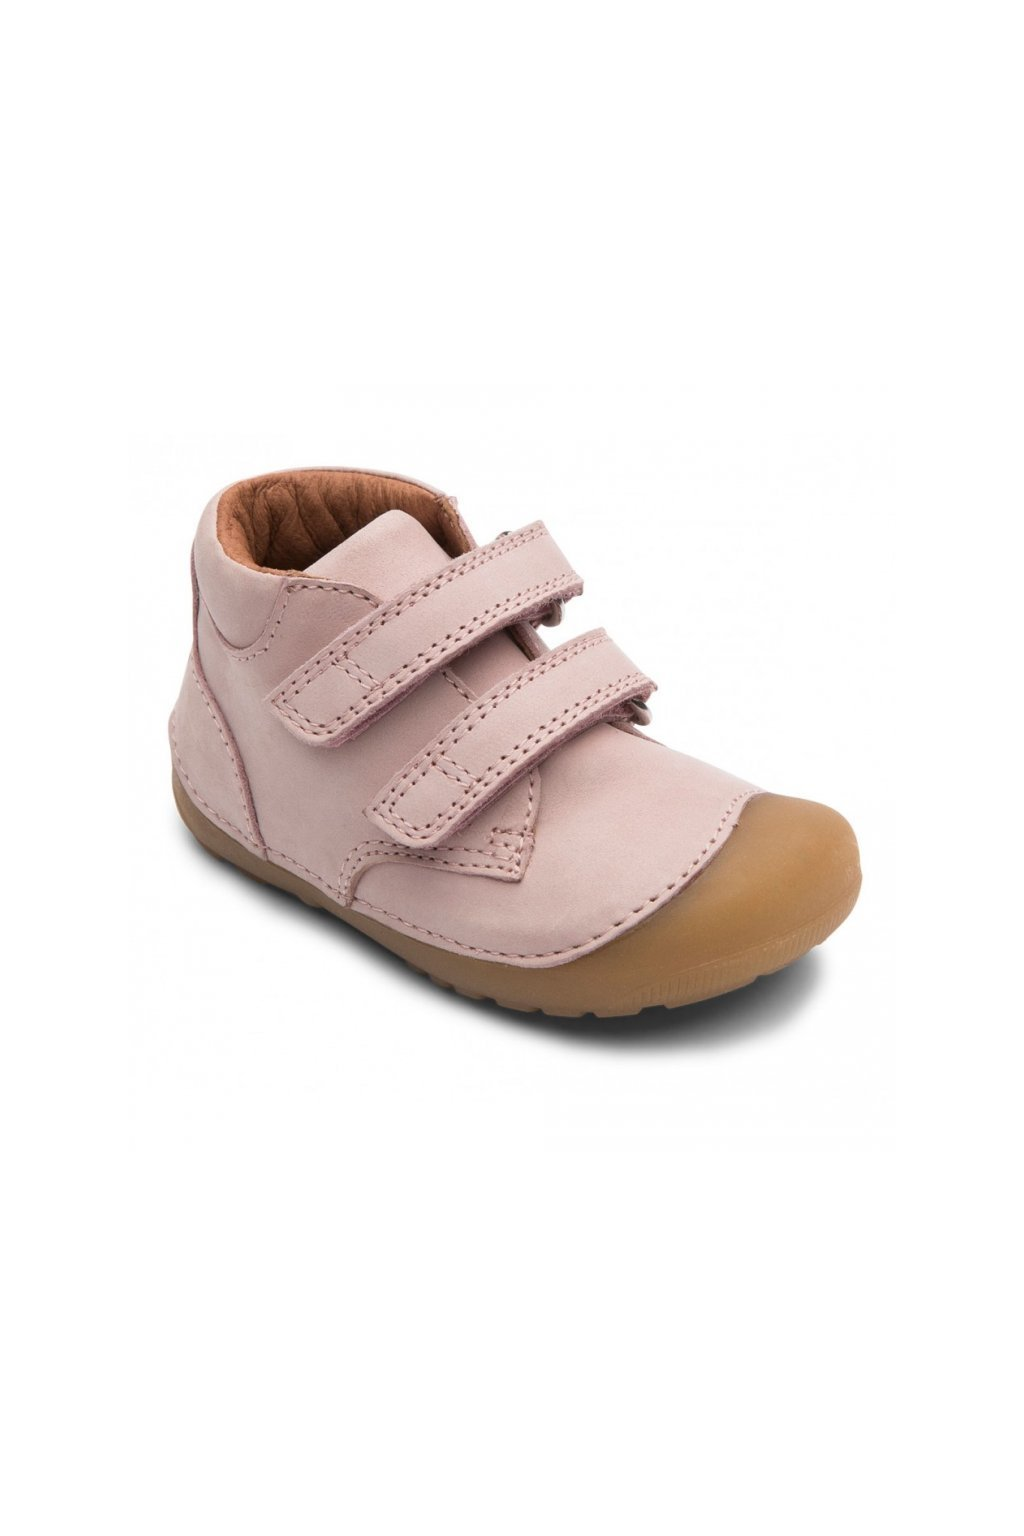 Bundgaard Petit Velcro - Old Rose